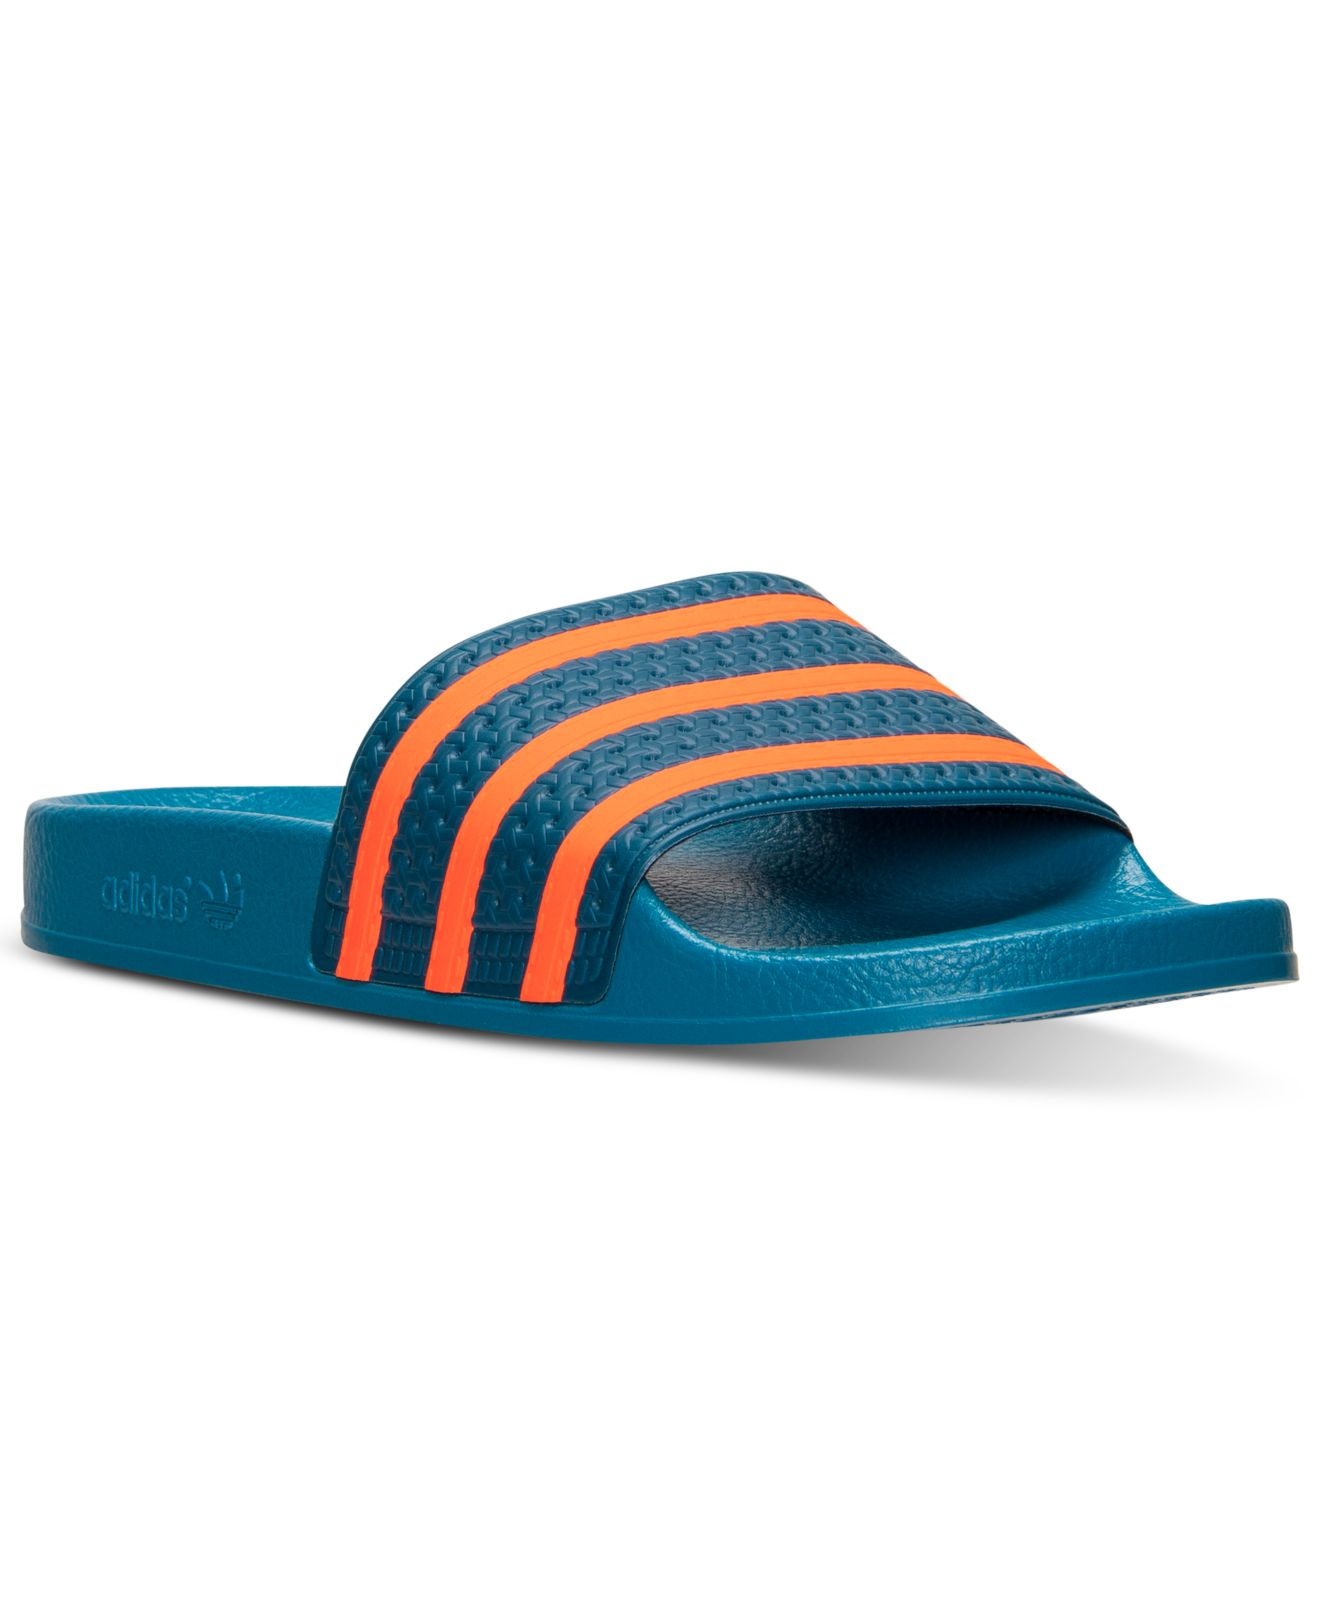 3a736d3a0975 Lyst - adidas Men S Adilette Slide Sandals From Finish Line in Blue ...